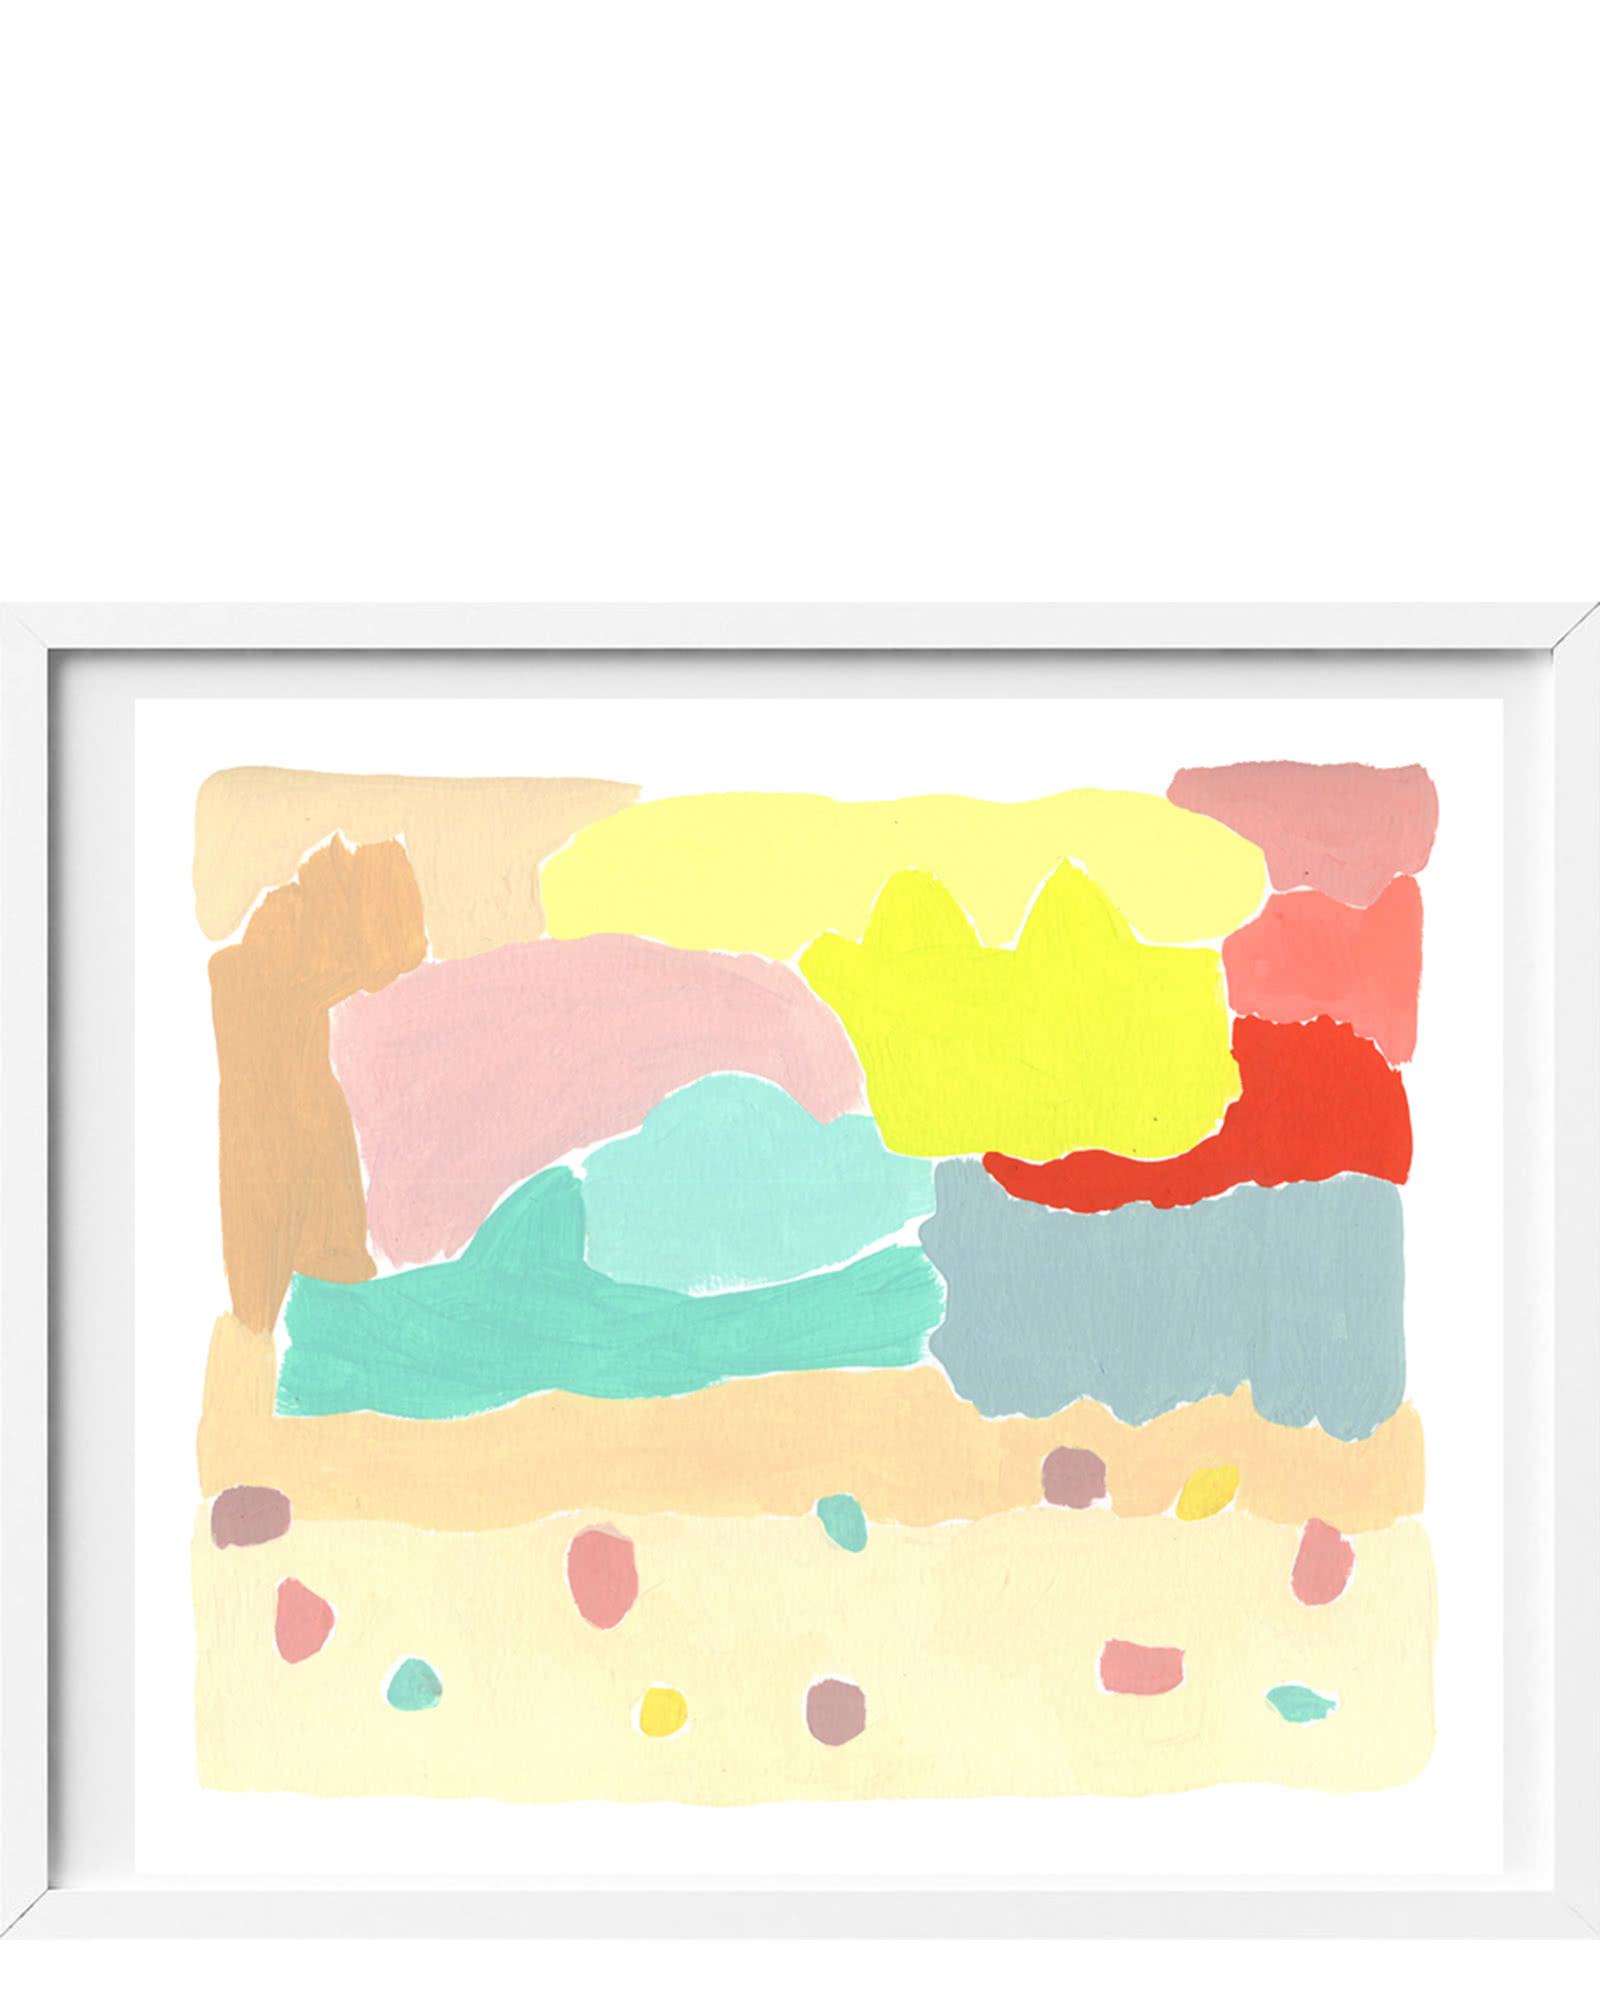 """Beach Painting"" by Erica Kane Fink,"